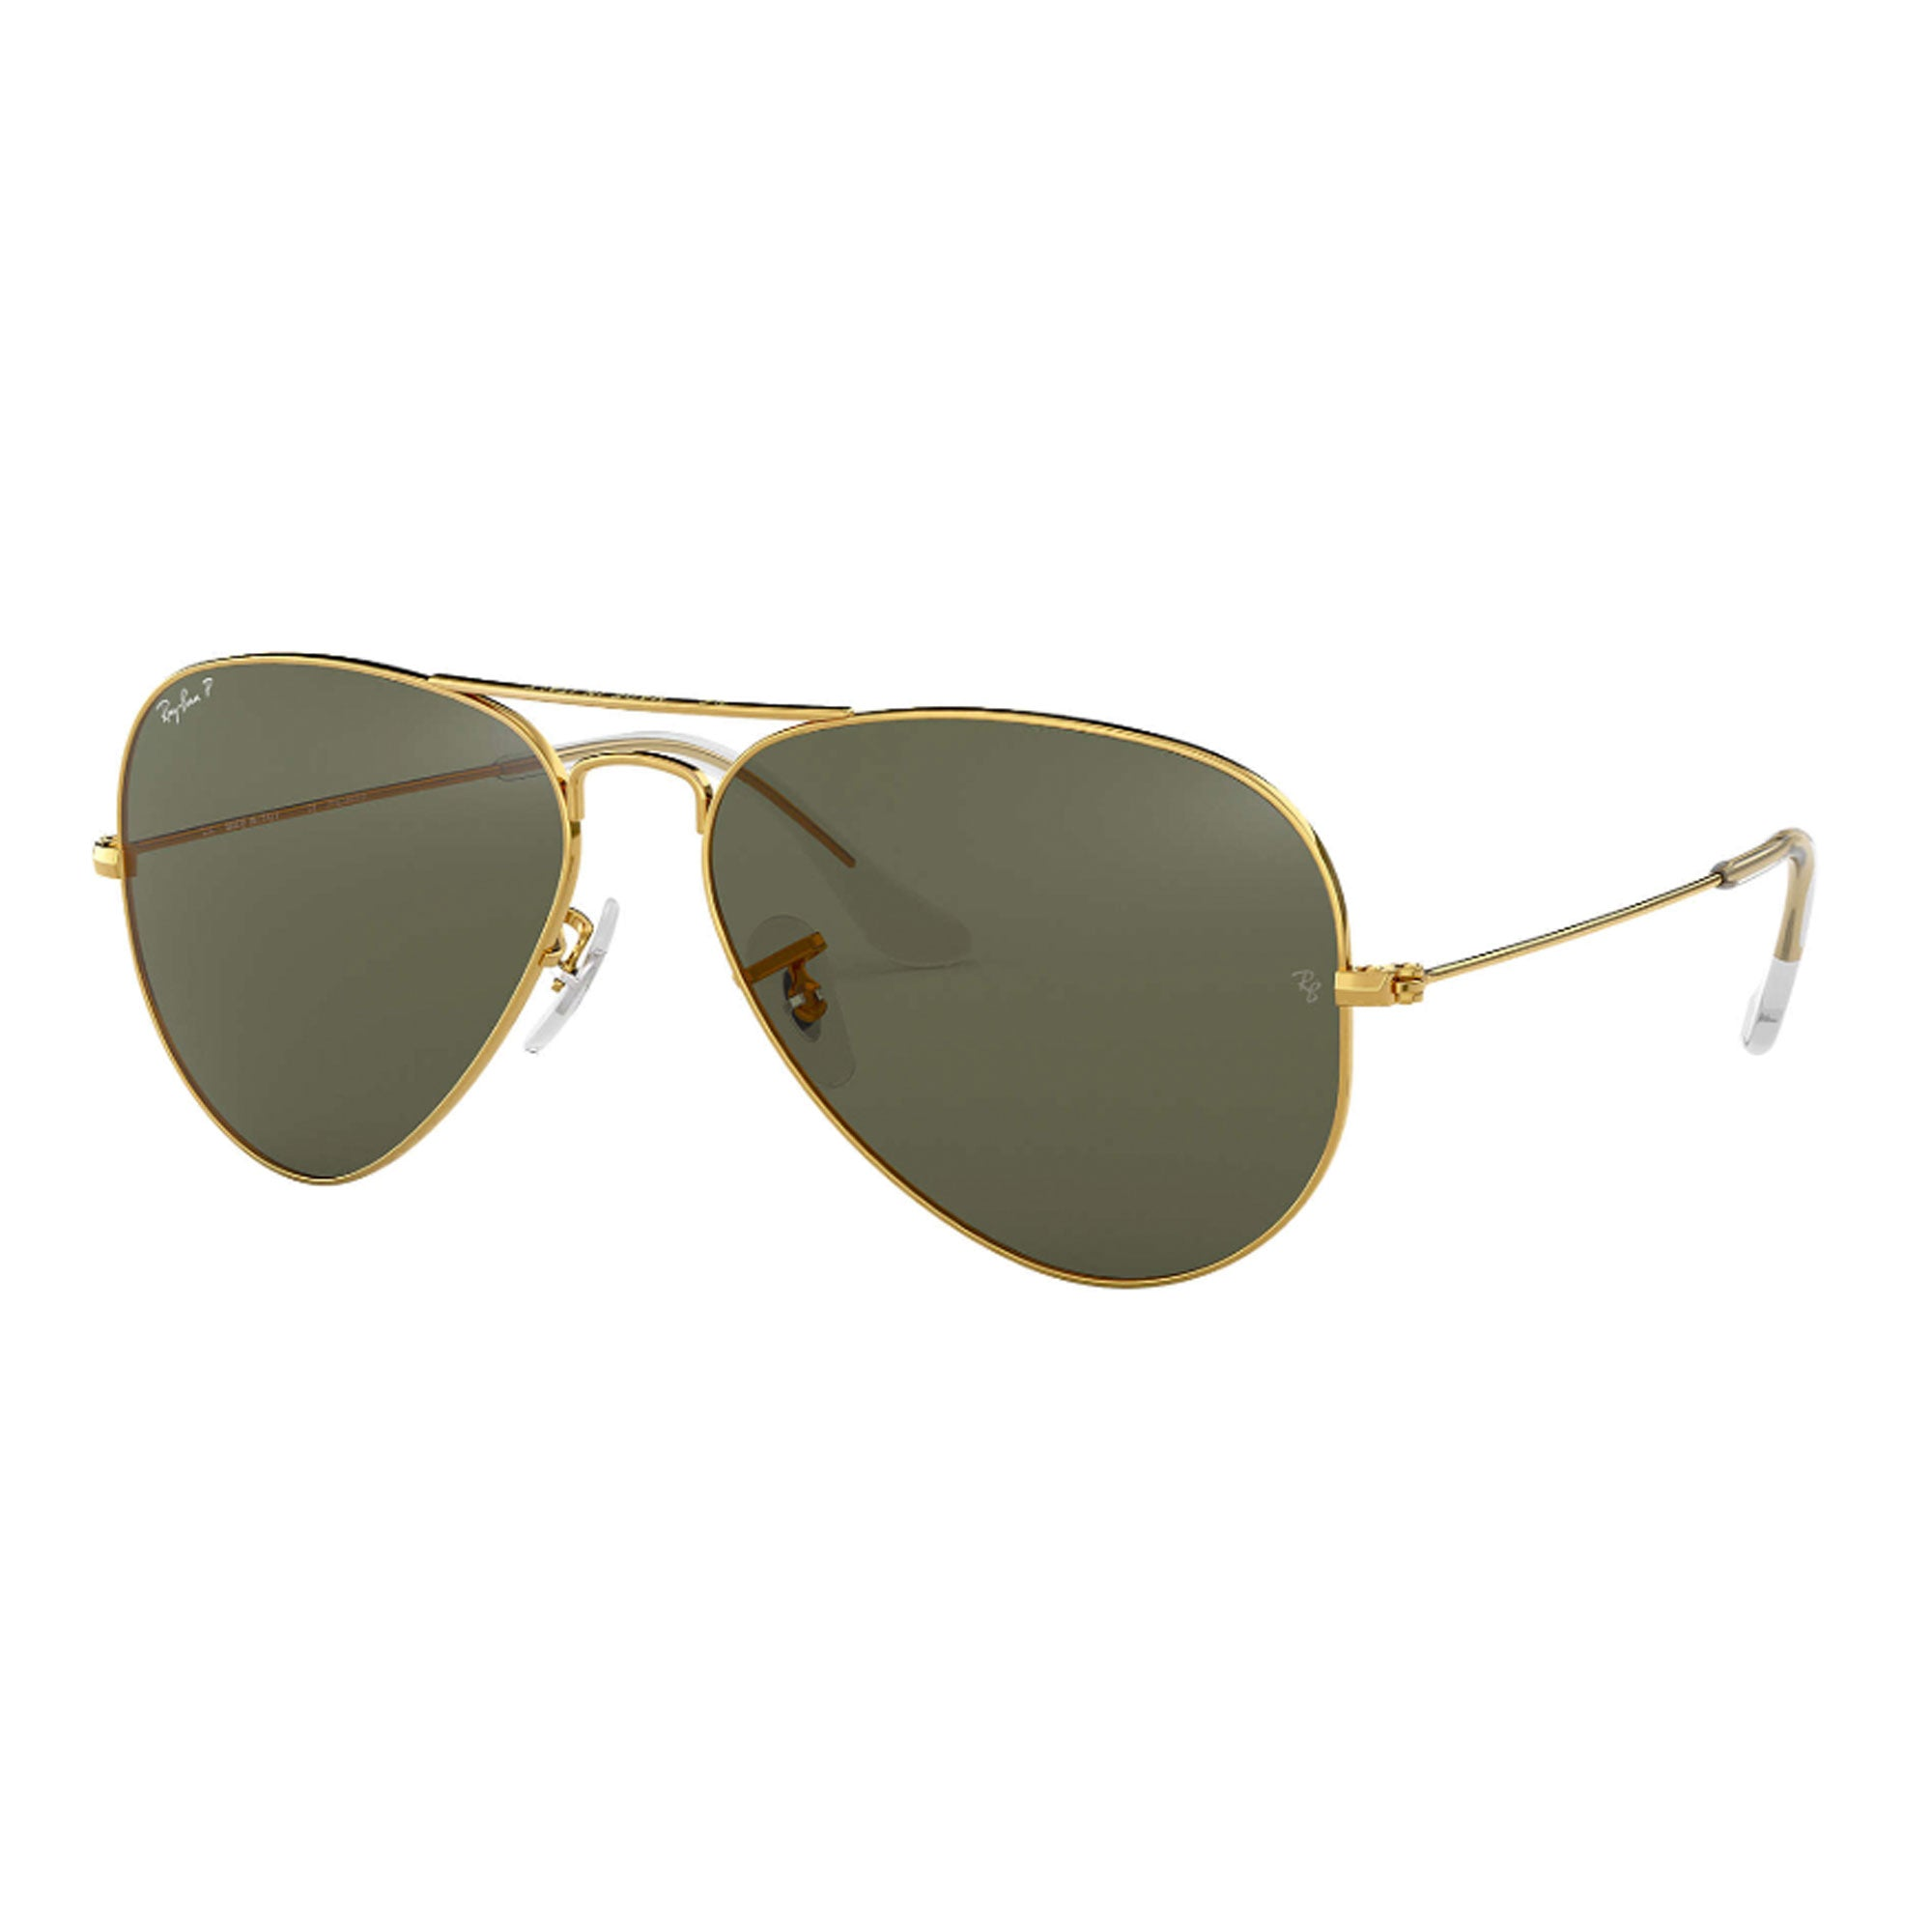 Ray-Ban Aviator Large Women's Sunglasses - Polarized - Gold/Crystal Green